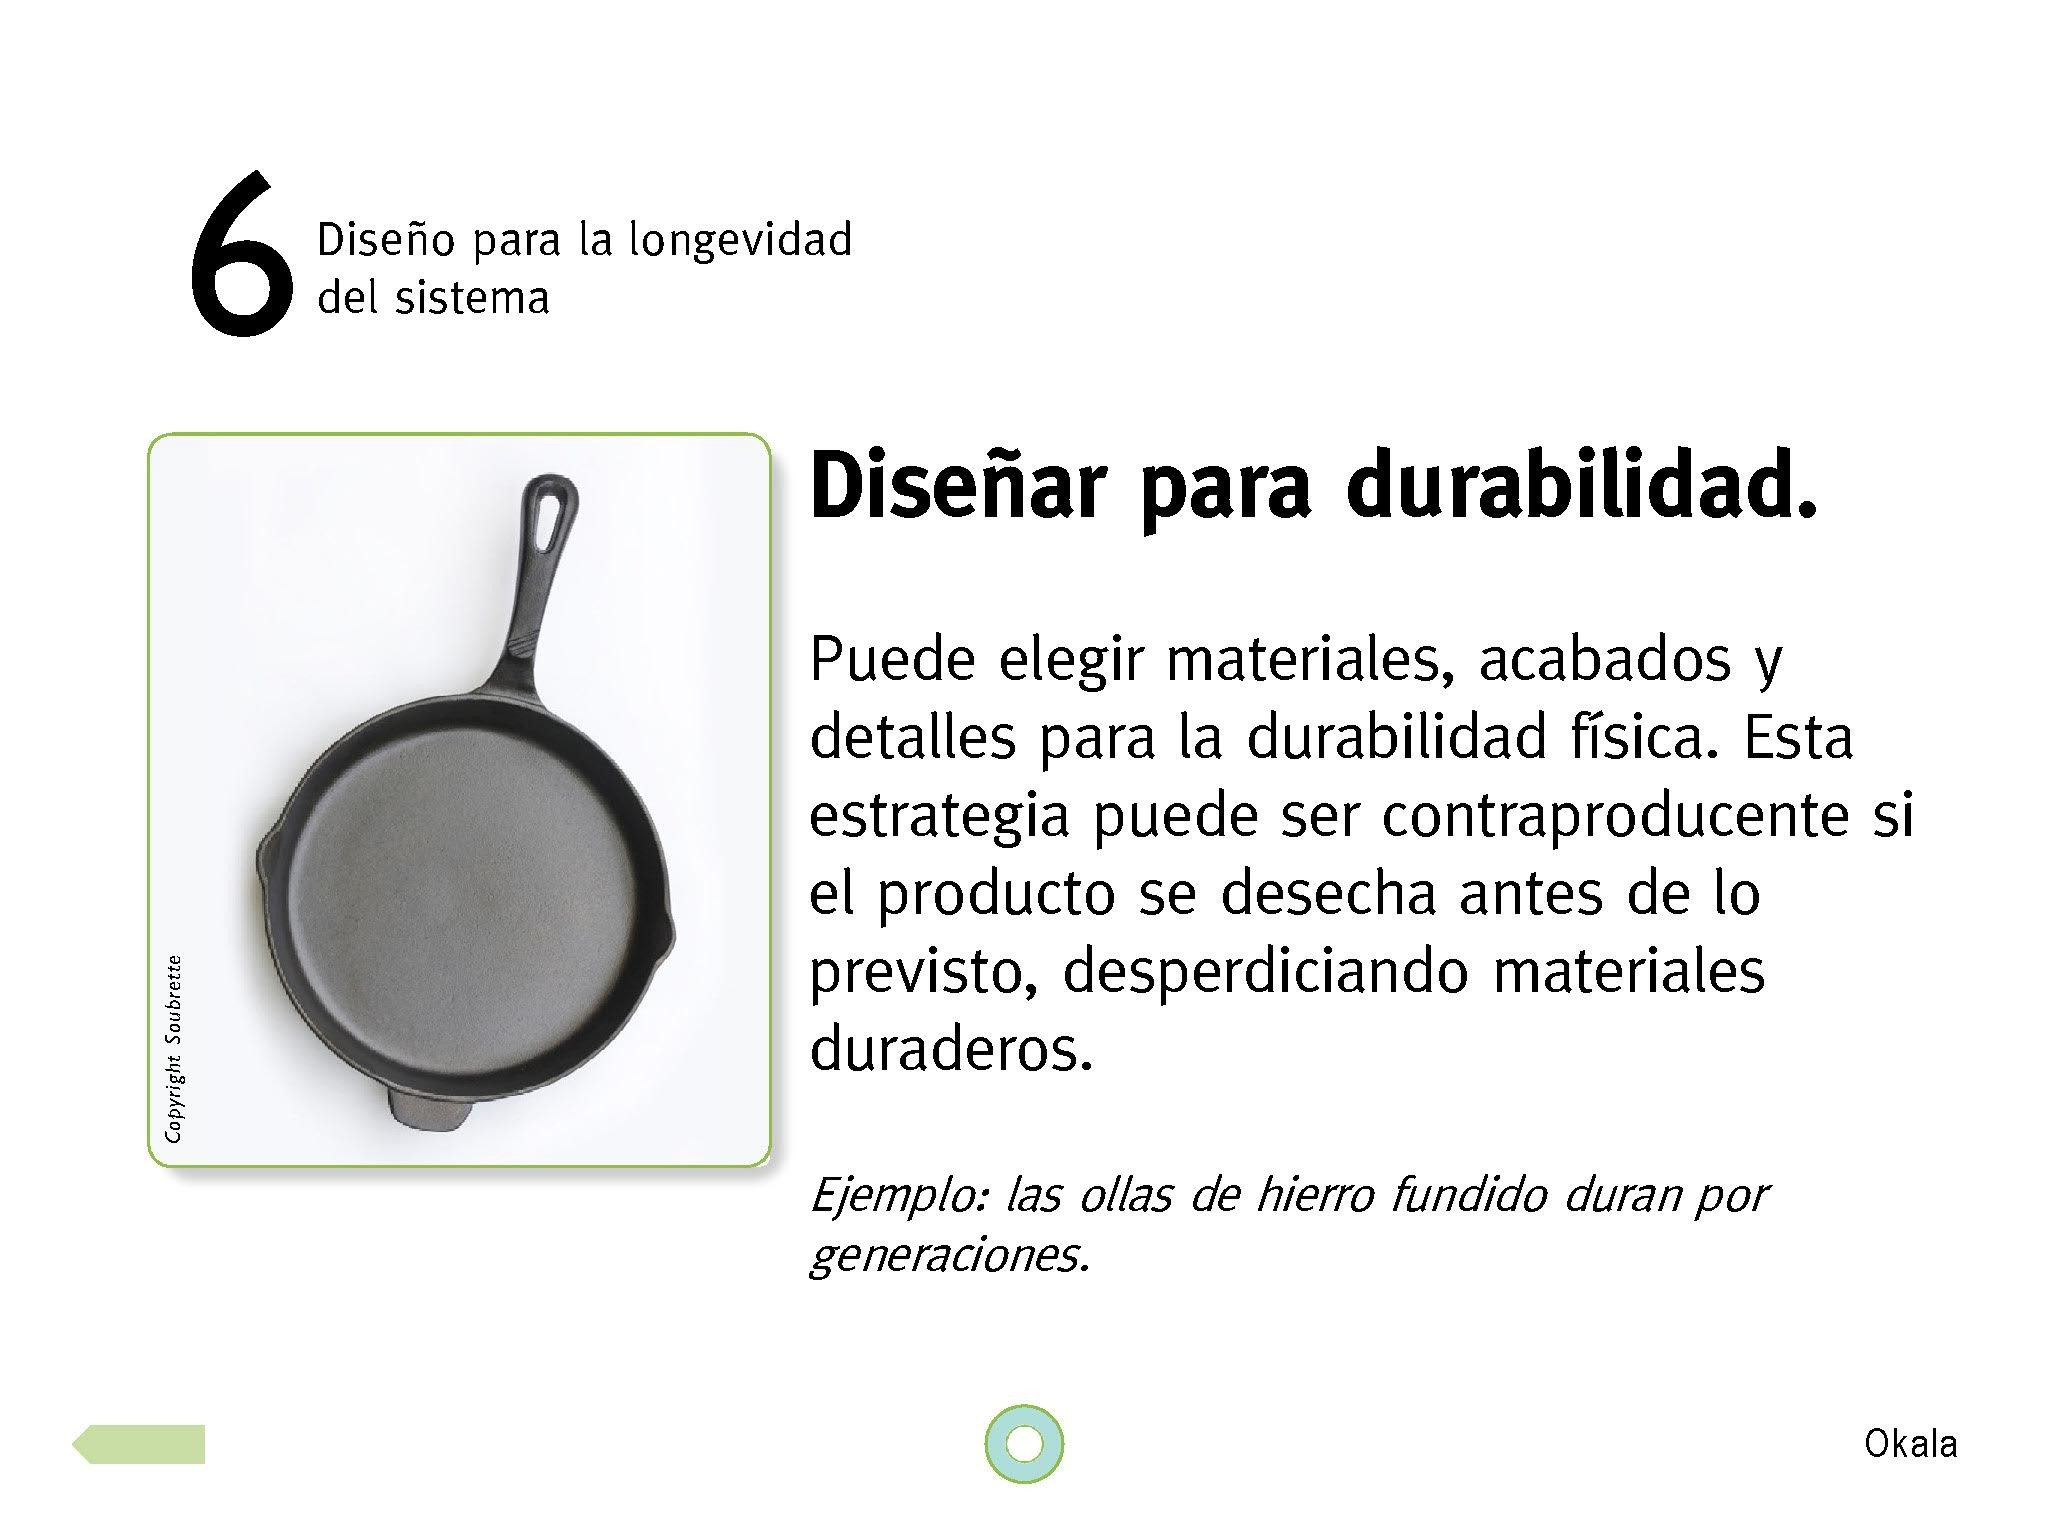 okala-ecodesign-strategy-guide-2012-spanish.new_page_33-1